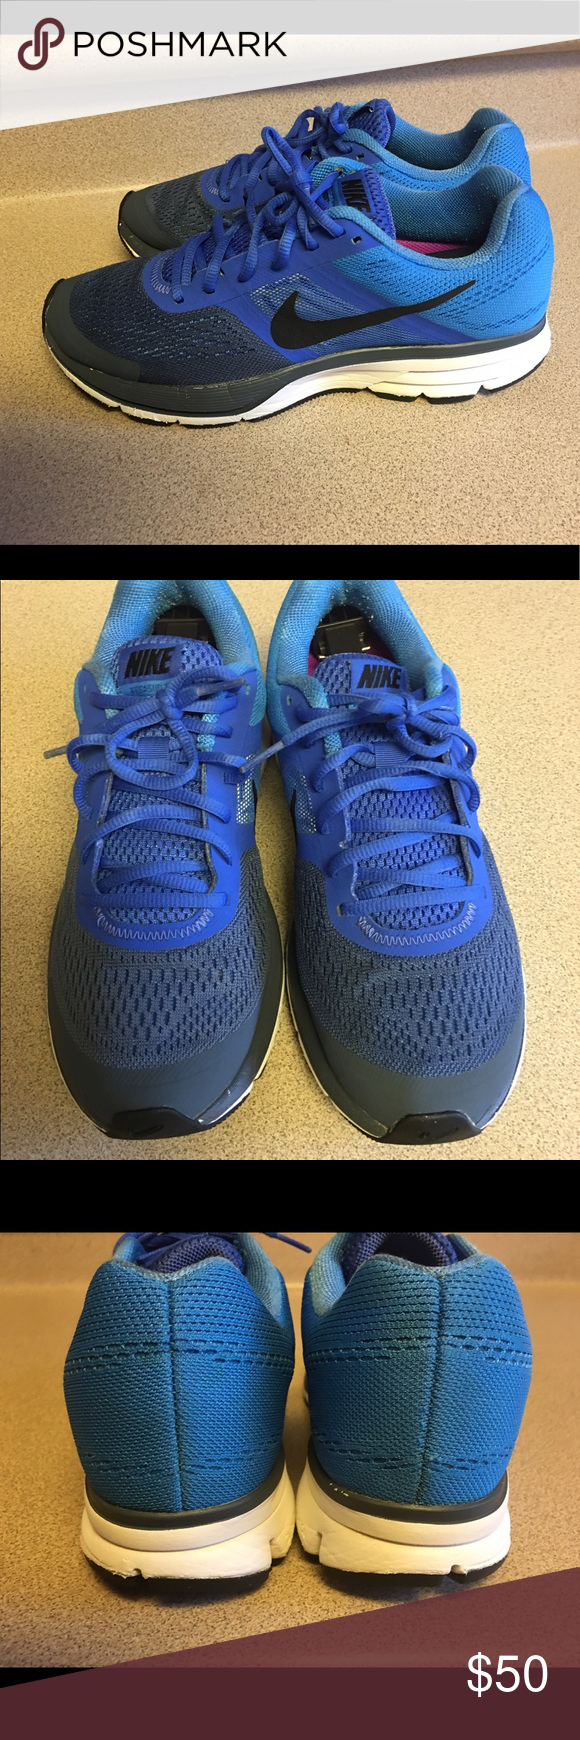 Shop Men's Nike Blue size Sneakers at a discounted price at Poshmark.  Description: Pre-owned Nike Air Pegasus + 30 Men's Running Shoes Size US M  (D) EU In ...